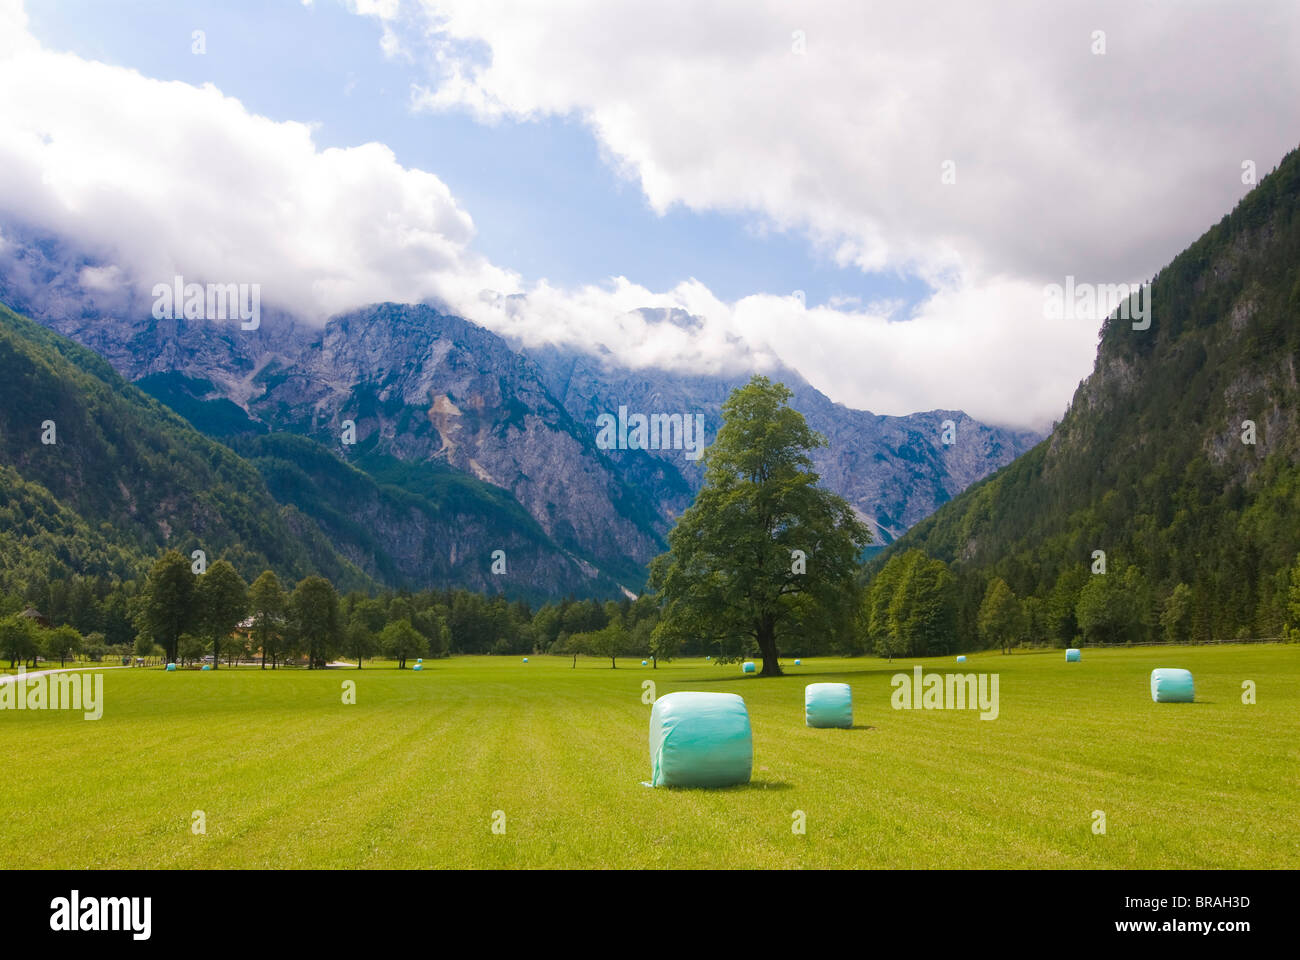 Valley with meadows and hay bales, Logarska Dolina, Slovenia, Europe - Stock Image